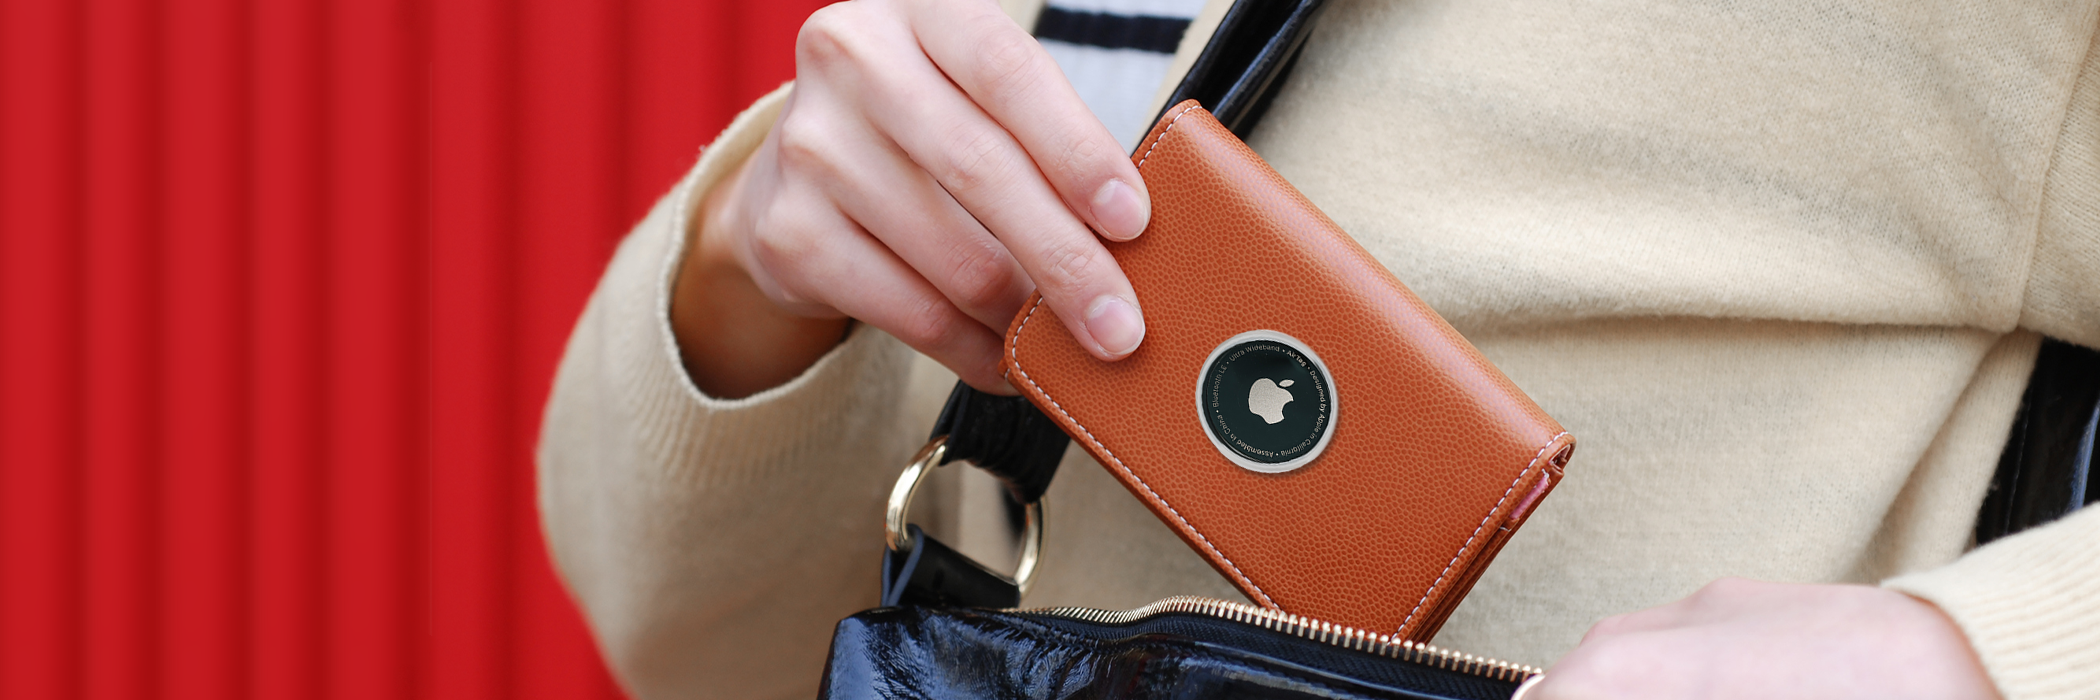 Woman pulling wallet from handbag with Apple Airtag bluetooth tracker attached.